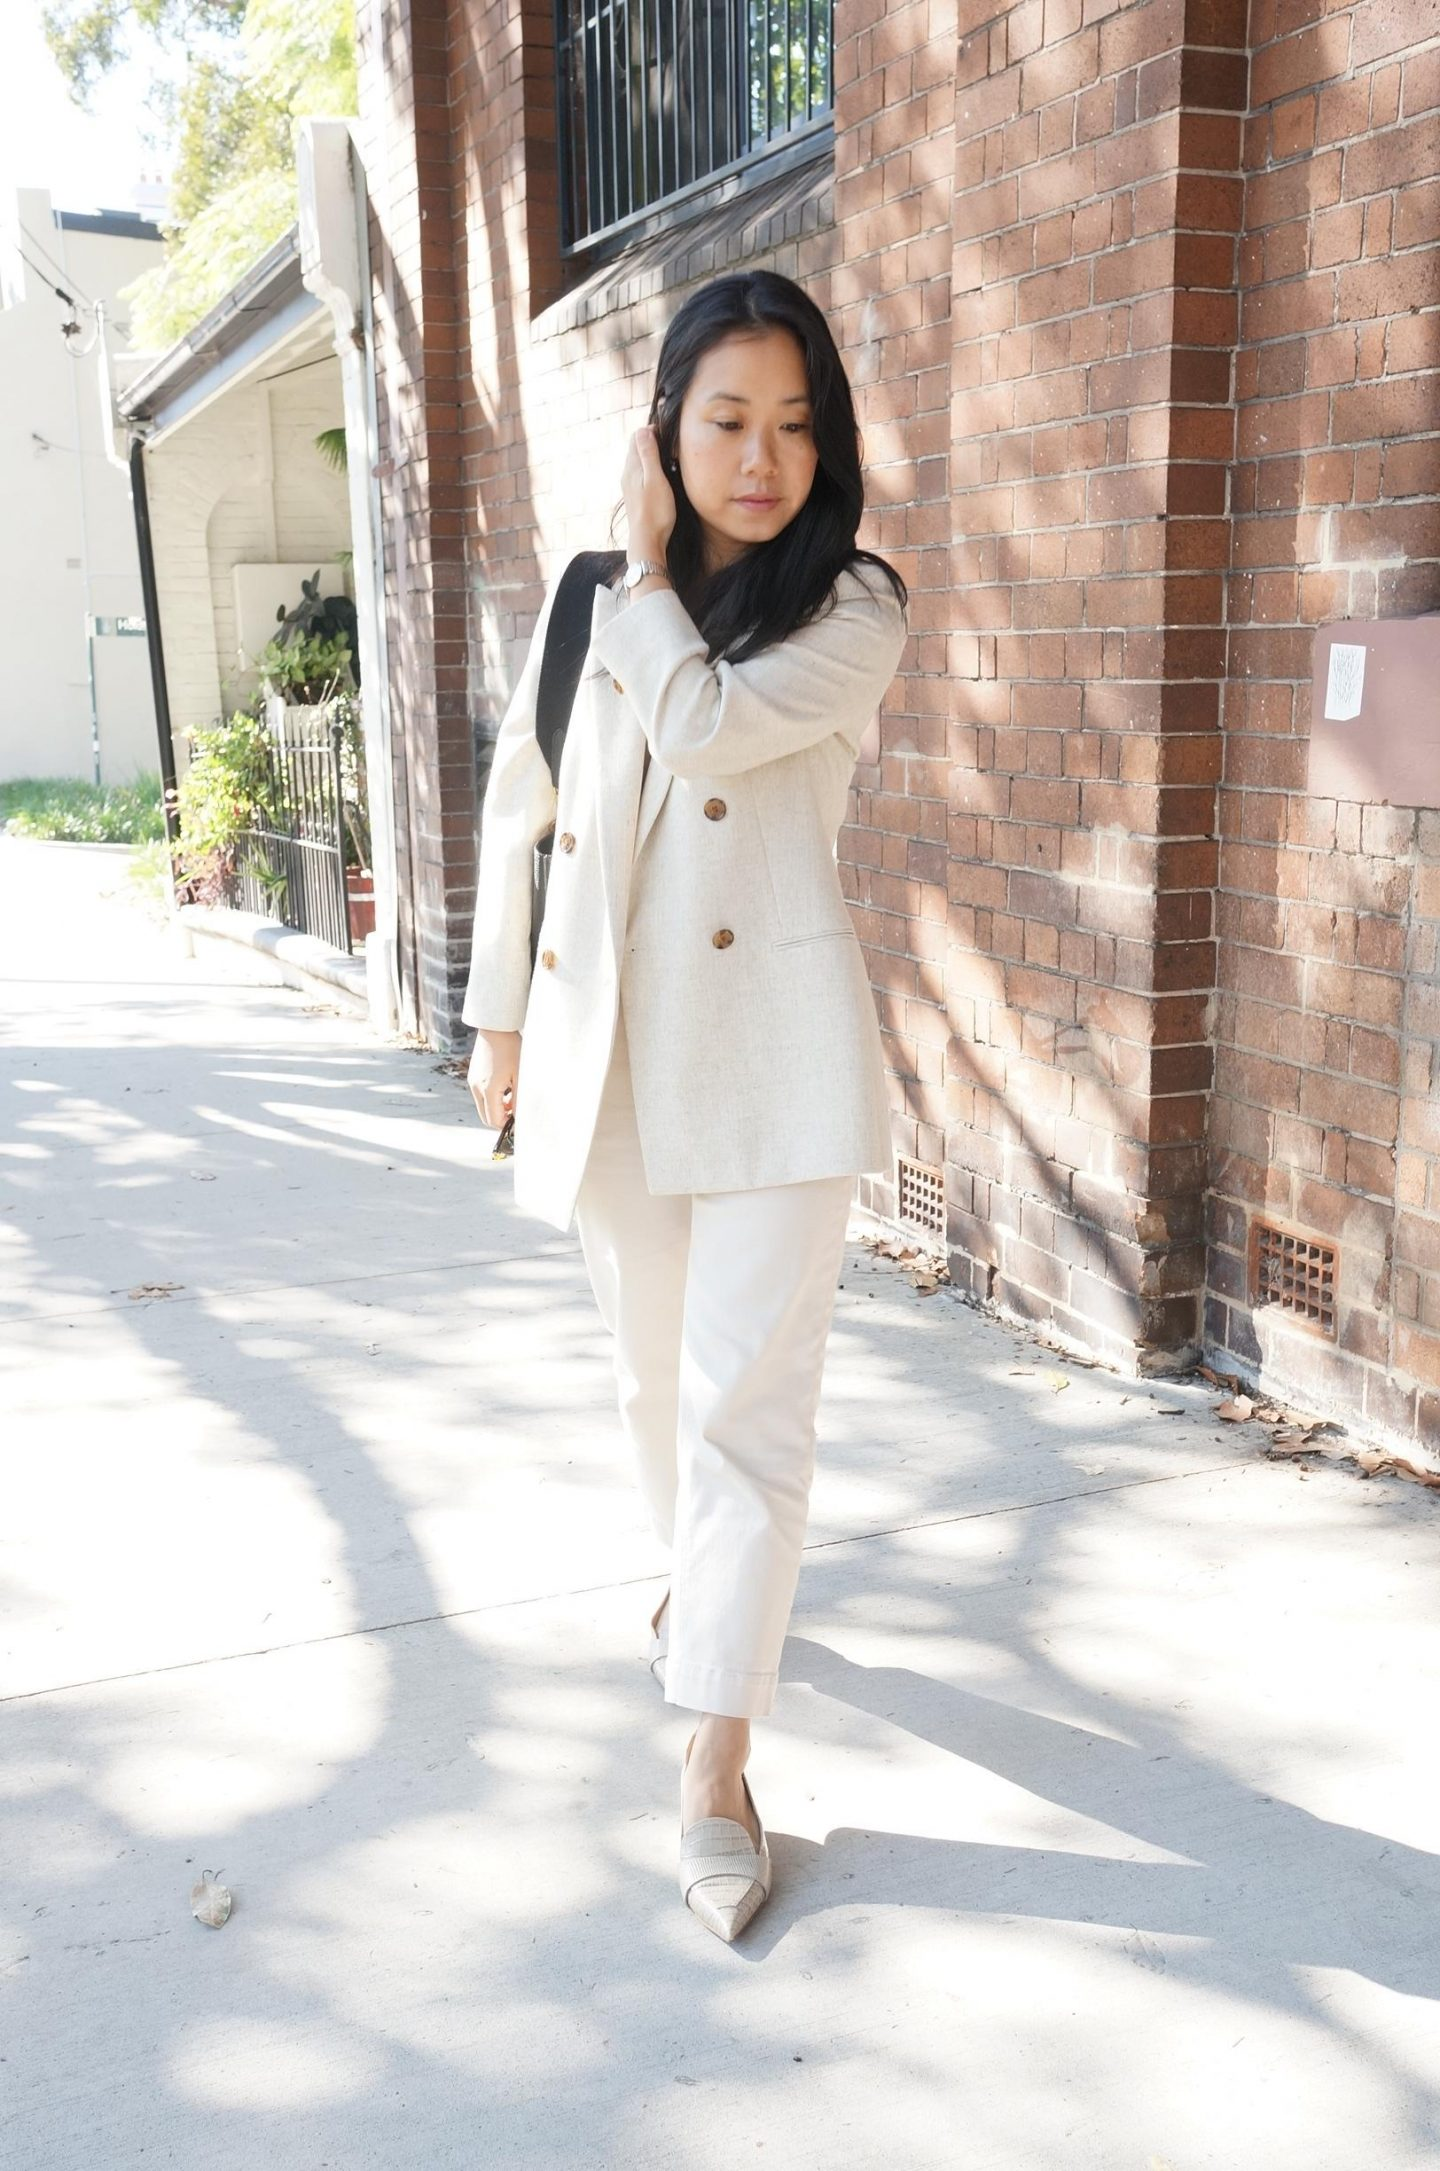 Styling a Beige Blazer for the Spring / Autumn Transition